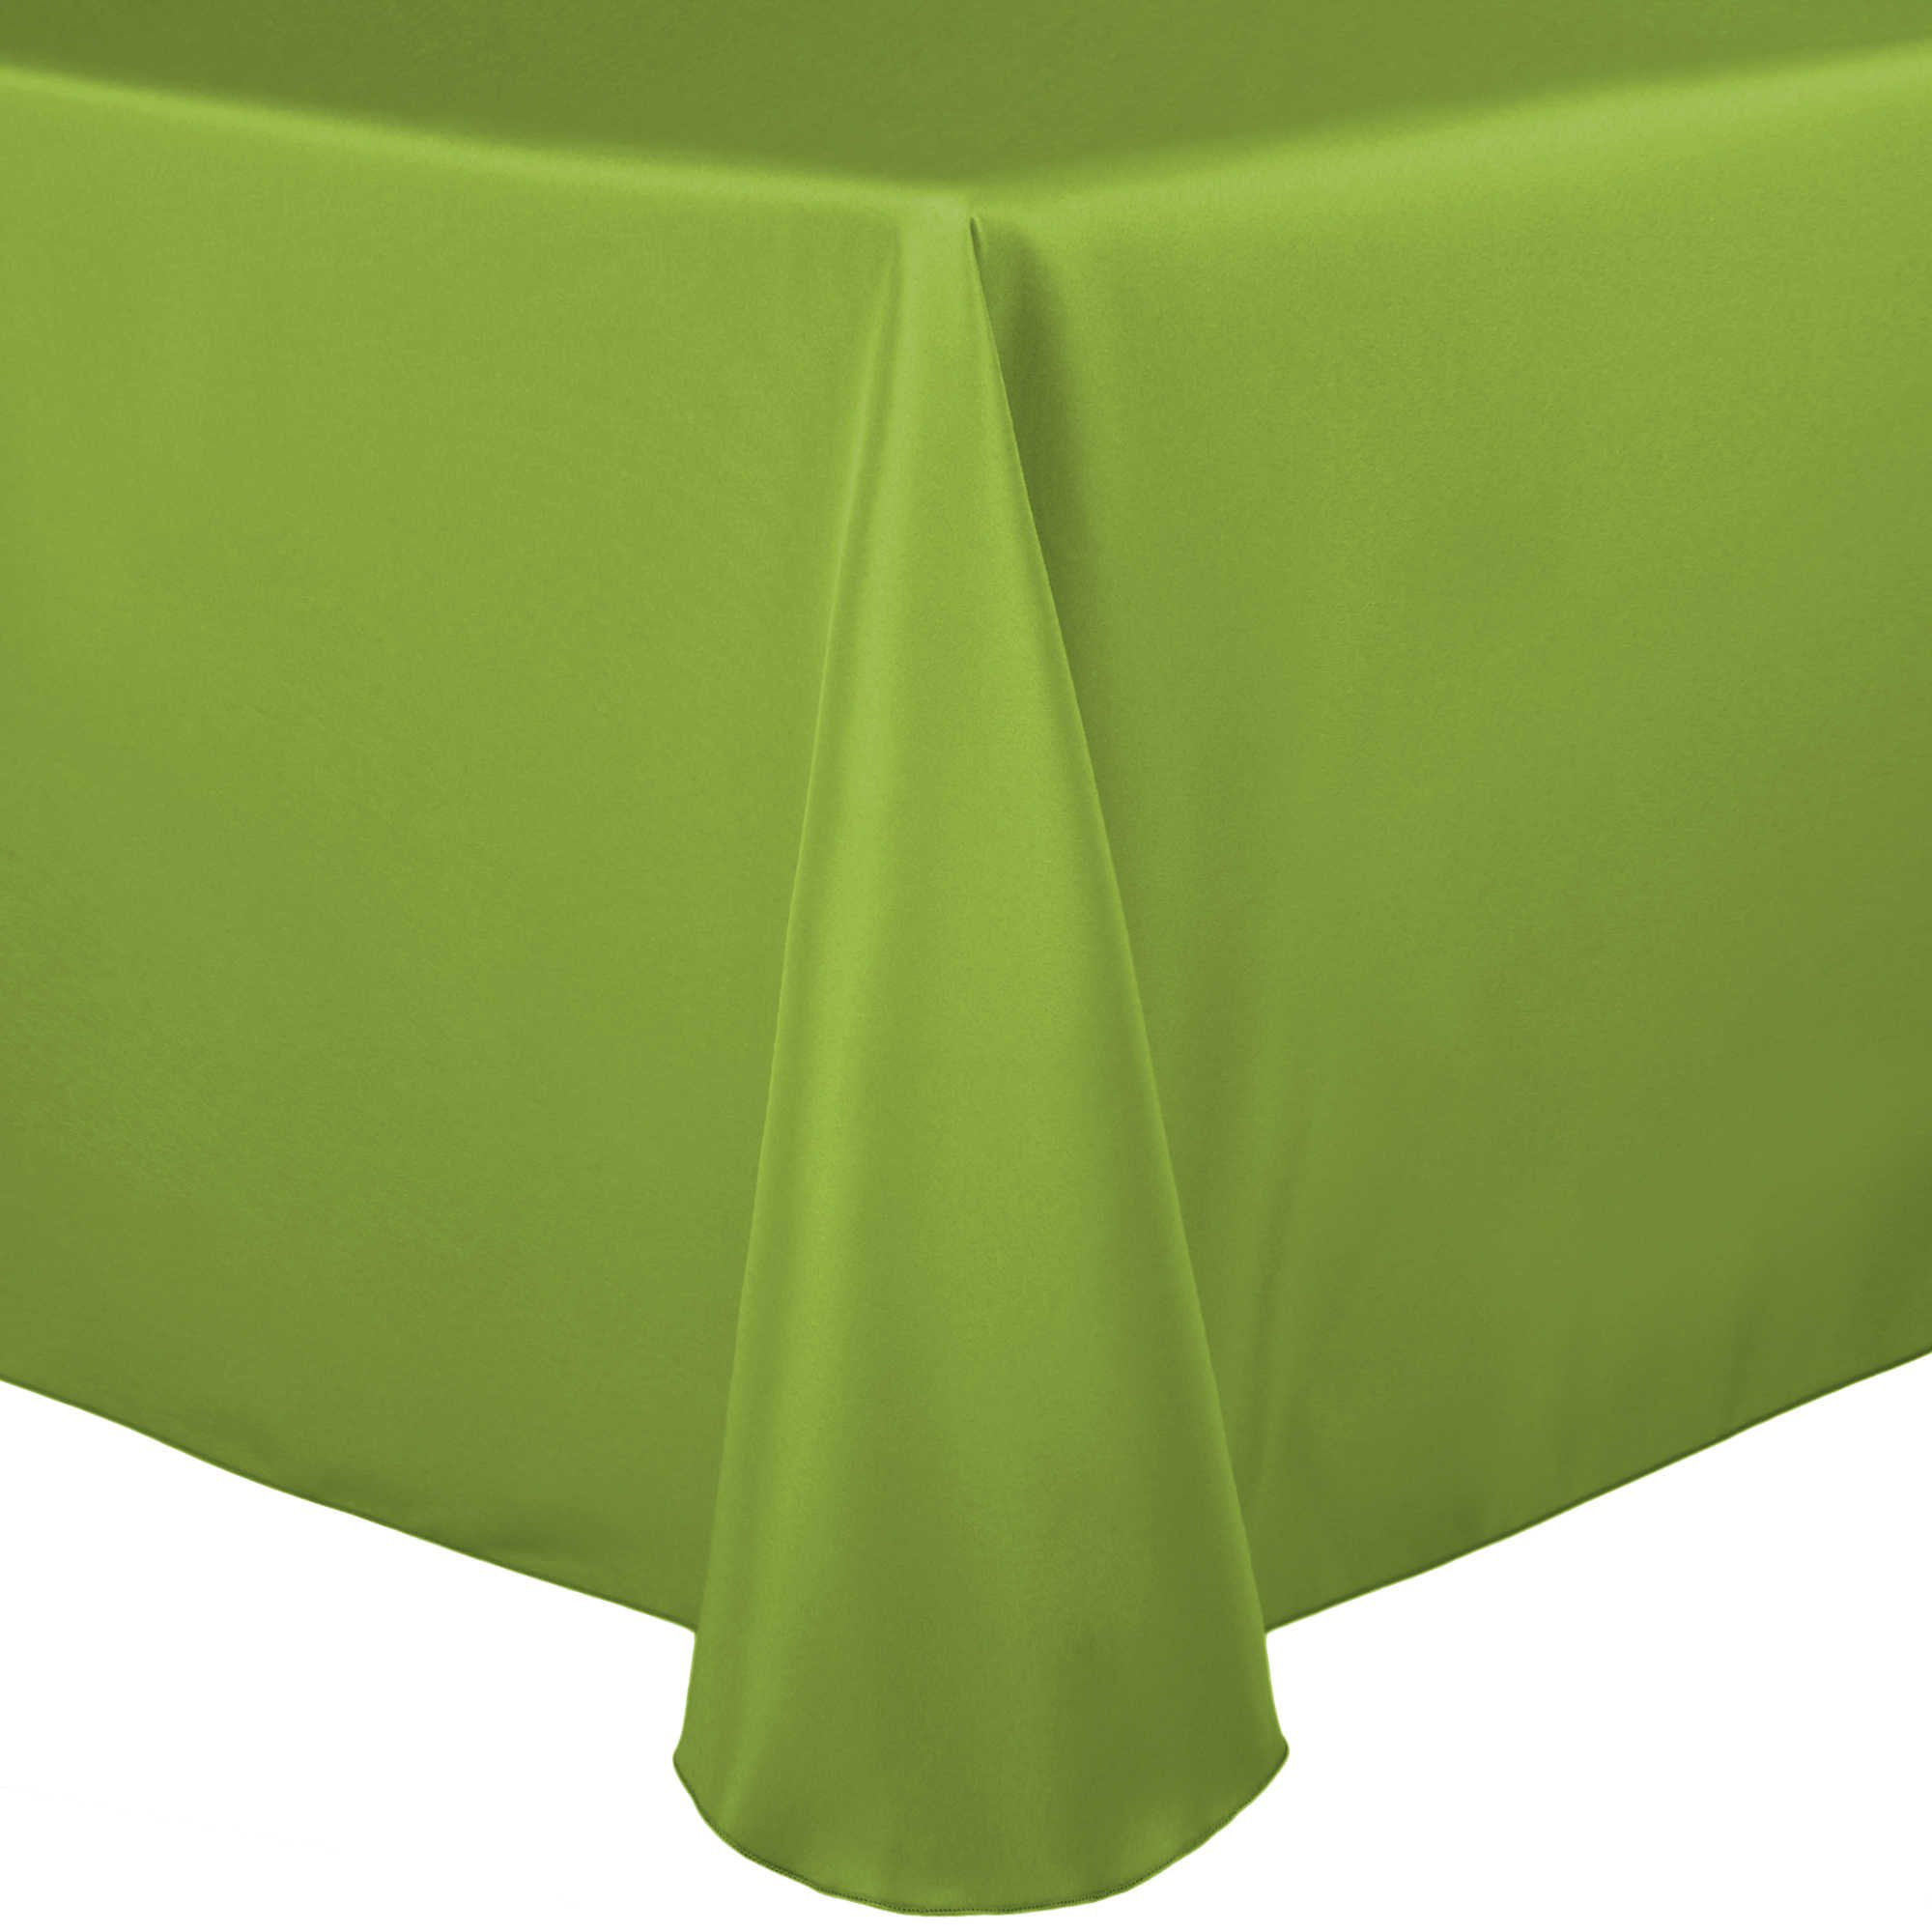 Ultimate Textile (40 Pack) 60 x 84-Inch Oval Polyester Linen Tablecloth - for Home Dining Tables, Lime Green